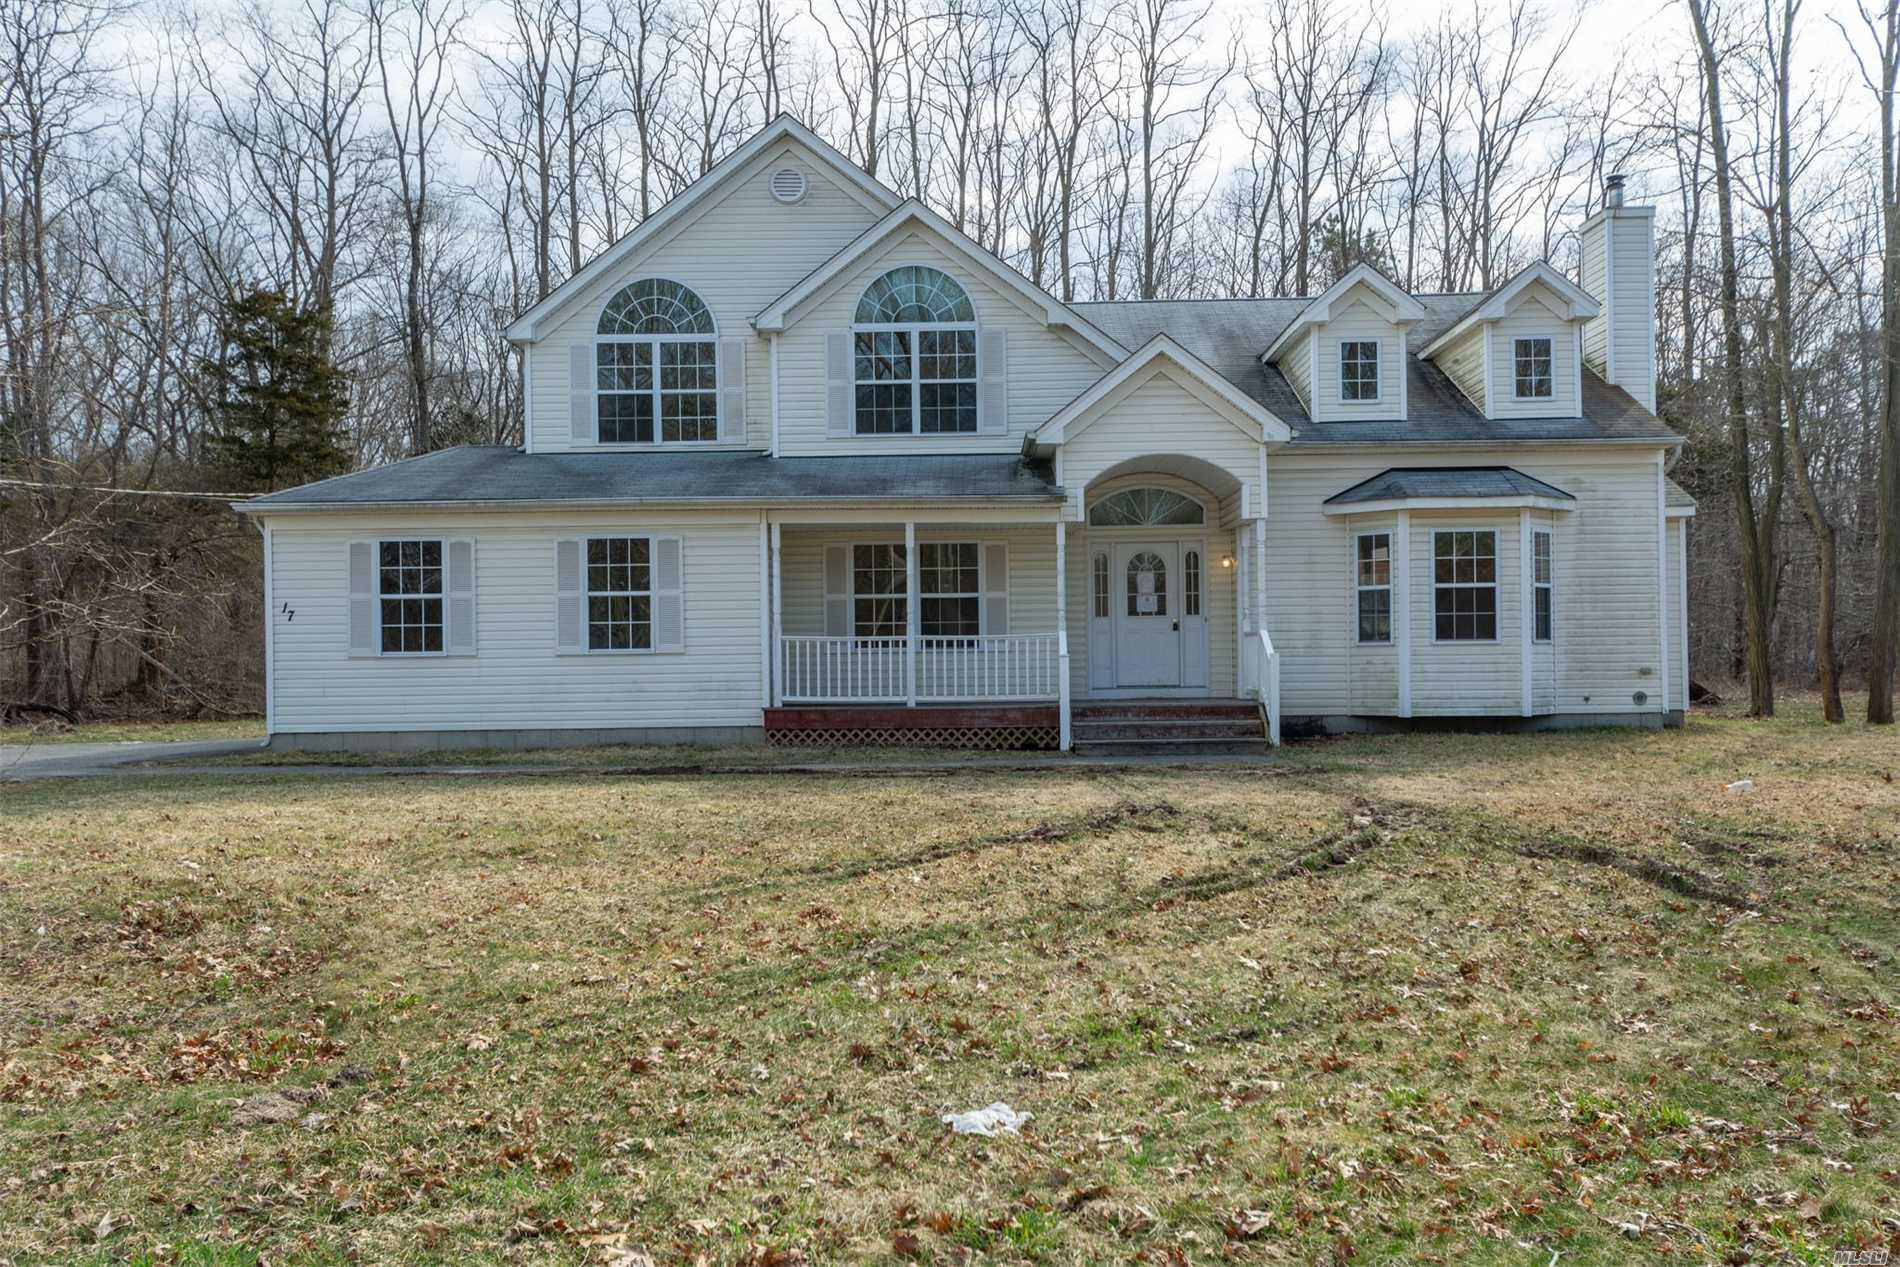 Great young home waiting for a buyer with vision. Large room sizes, hardwood flooring throughout.Garage must be converted back to SFR standards. Outside entry only to basement.Large lot, room for large IGP. Local to everything set back off roadway. Needs work Sold AS IS